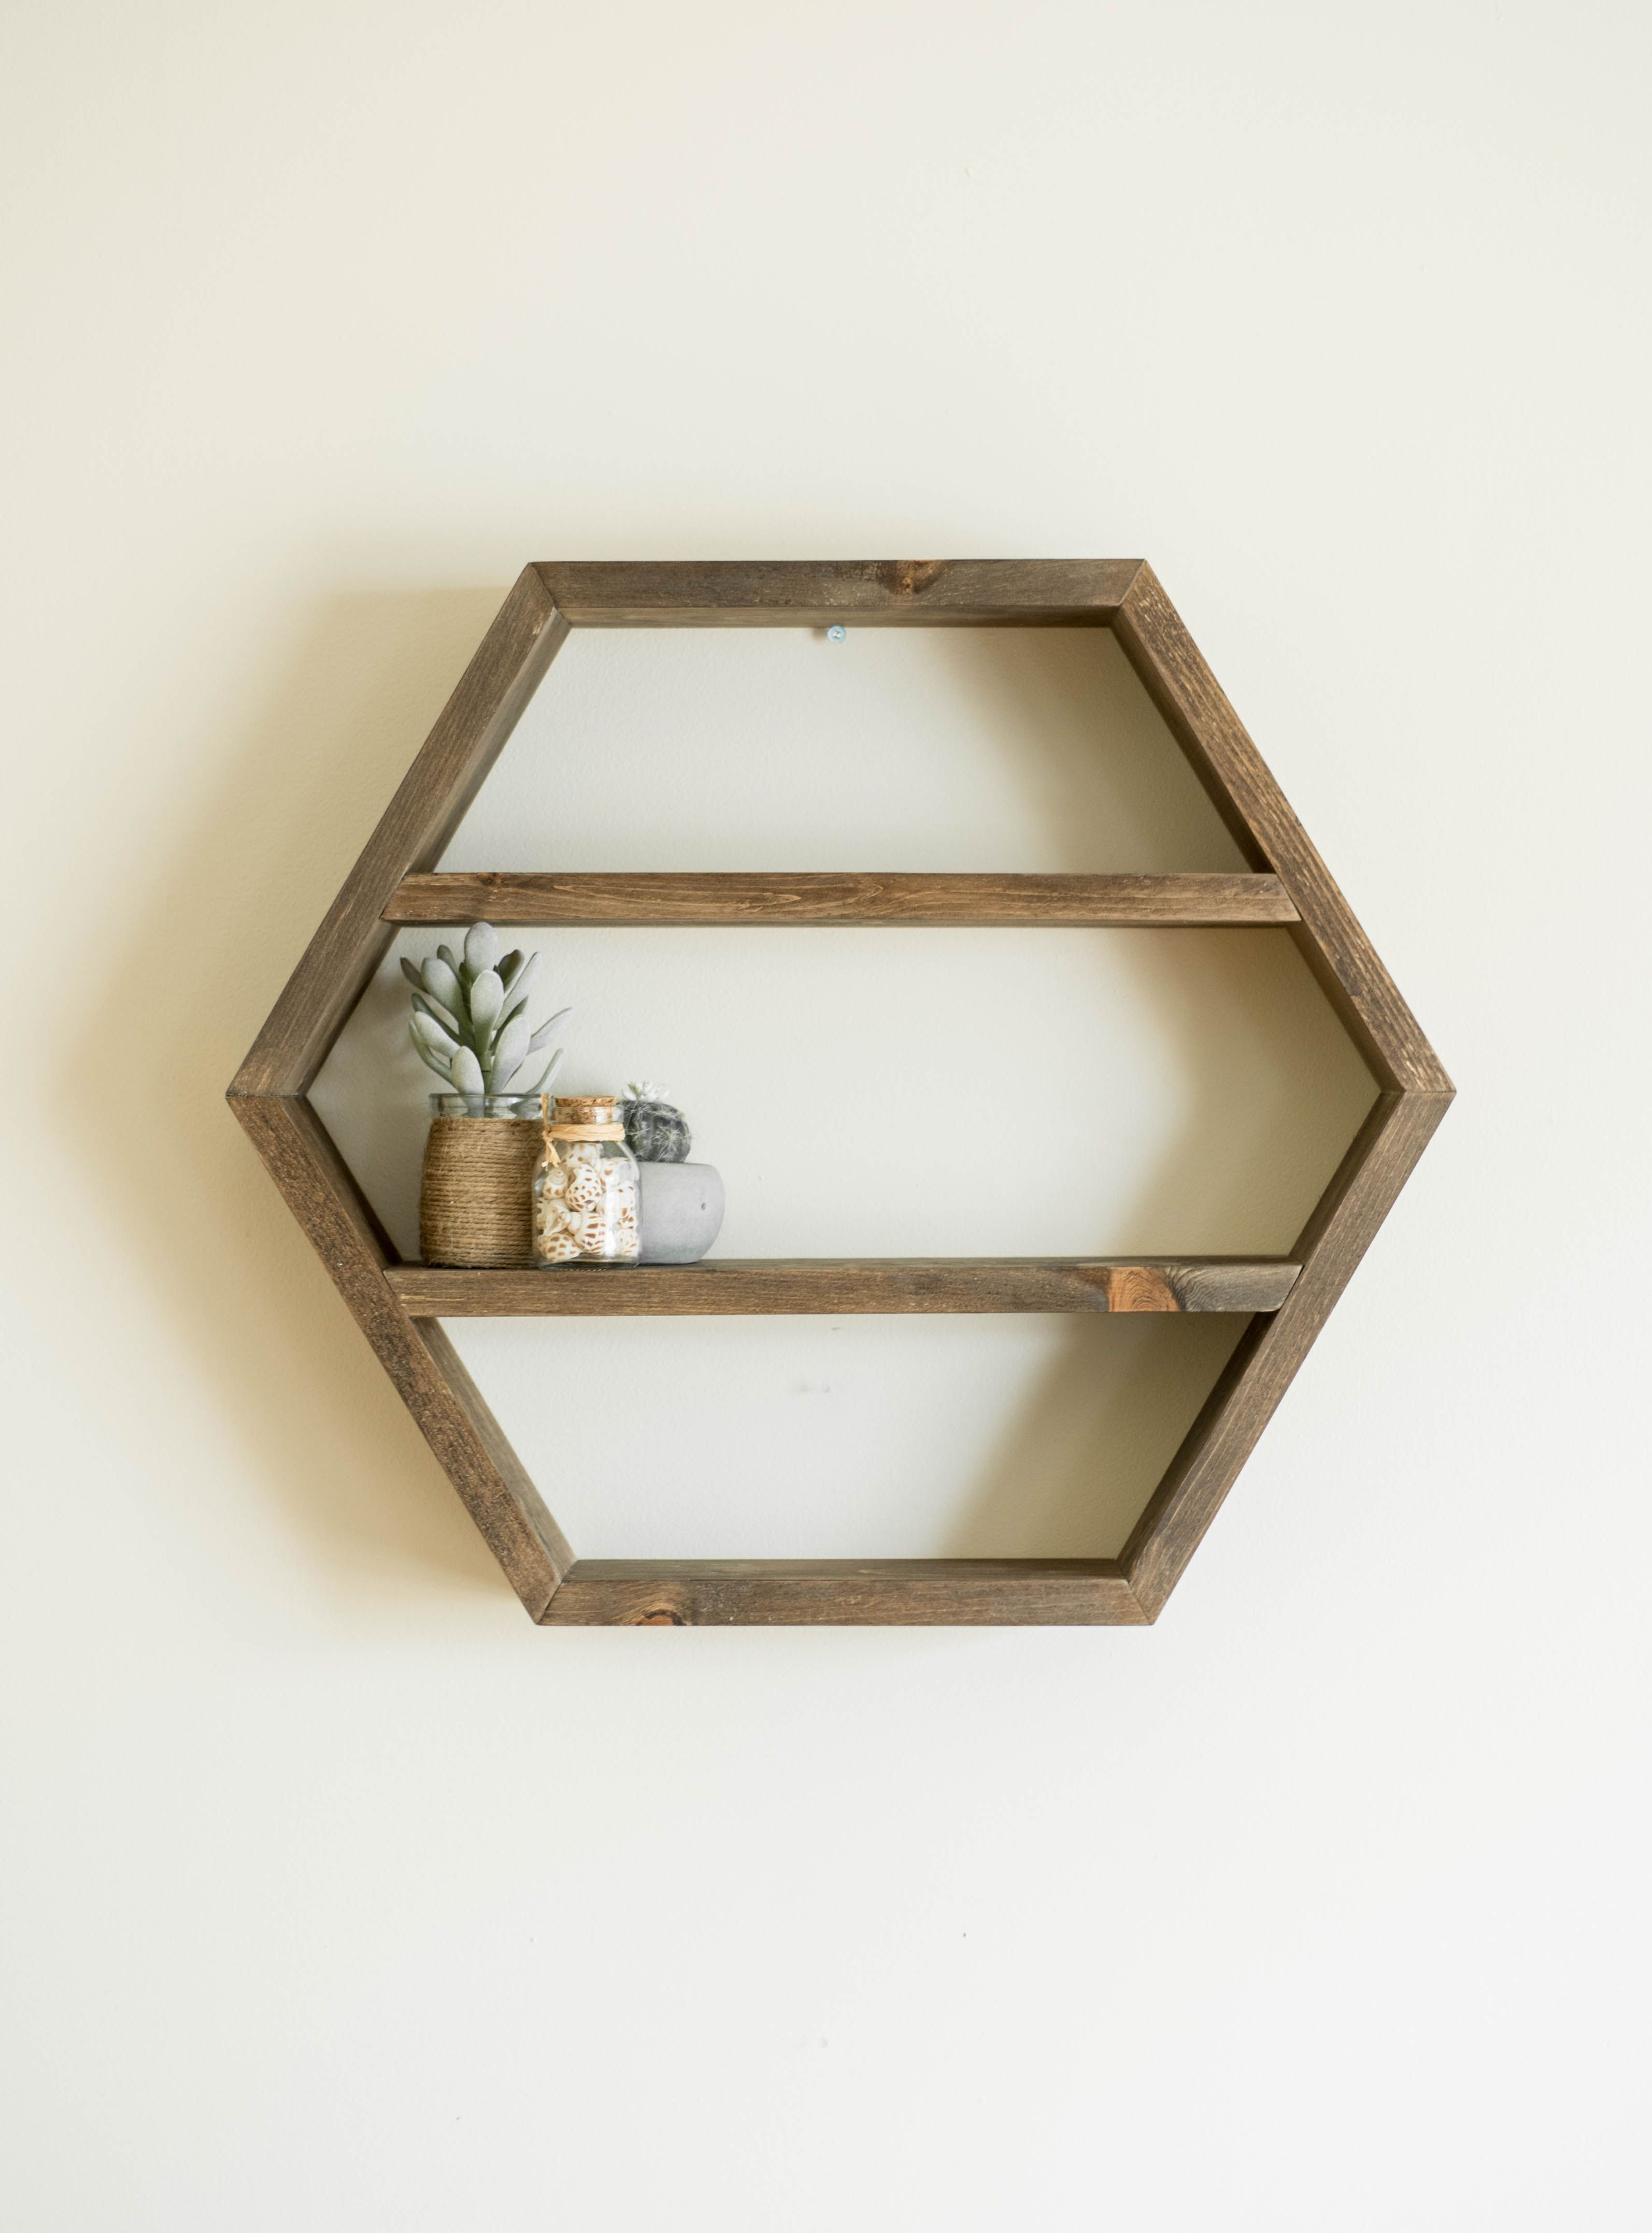 Large Wood Hexagon Shelf Essential Oil Wall Rack Spice Organizer Nursery Toy Storage Doterra Young Living Holder Geometric Bedroom Art Hexagon Shelves Wood Hexagon Shelves